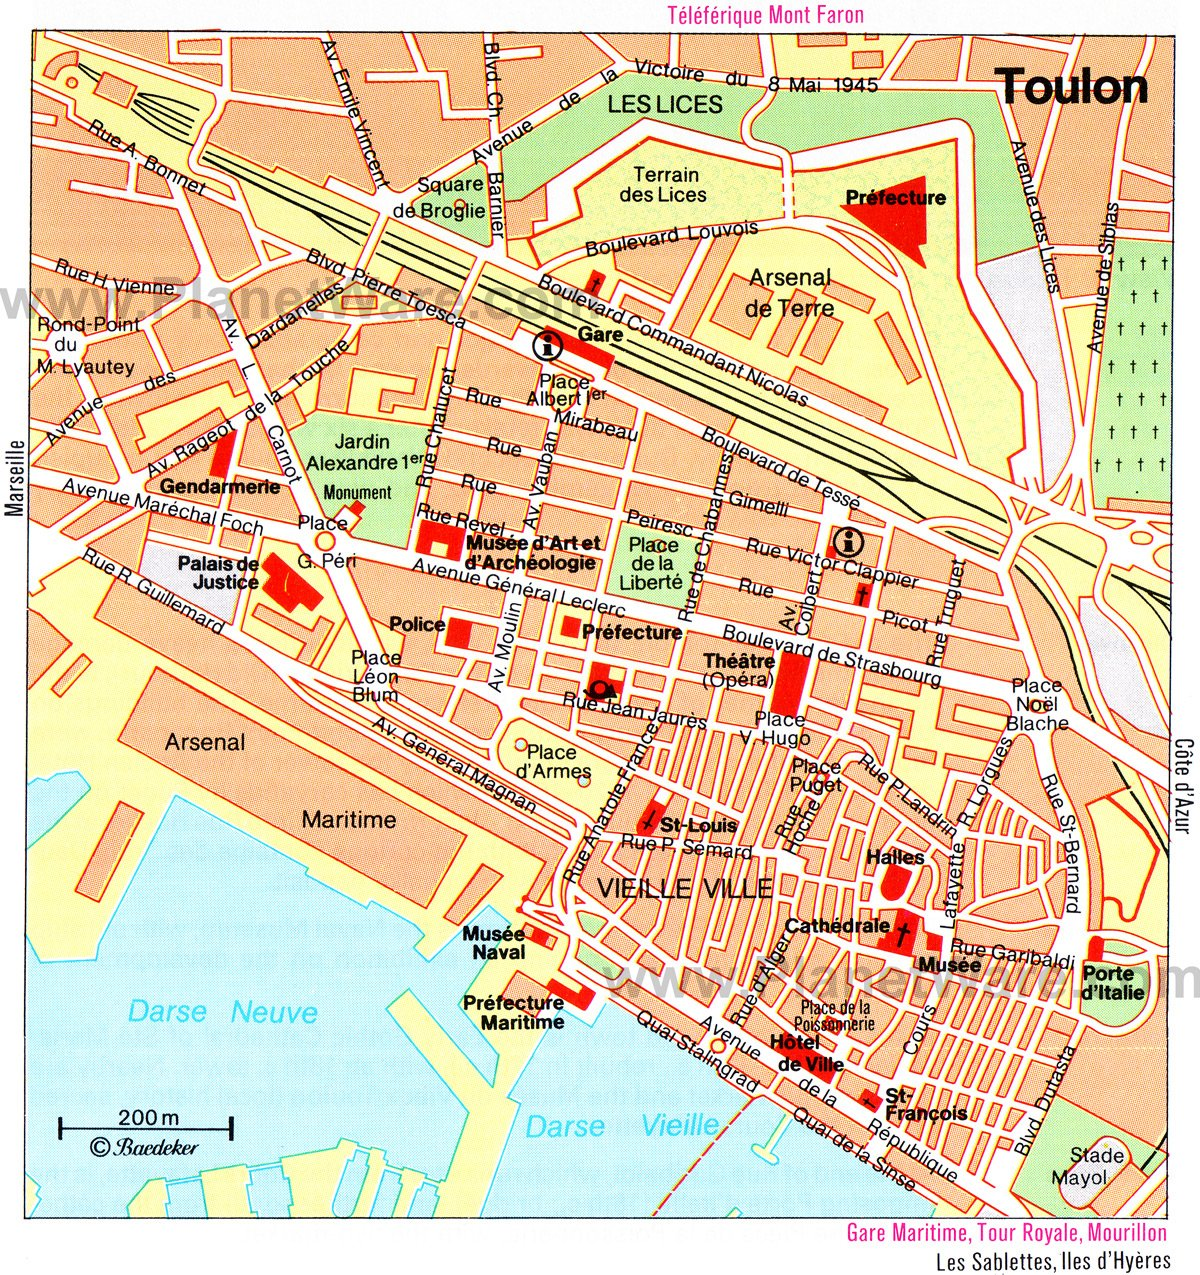 10 Top Tourist Attractions in Toulon and Easy Day Trips – Paris France Tourist Attractions Map